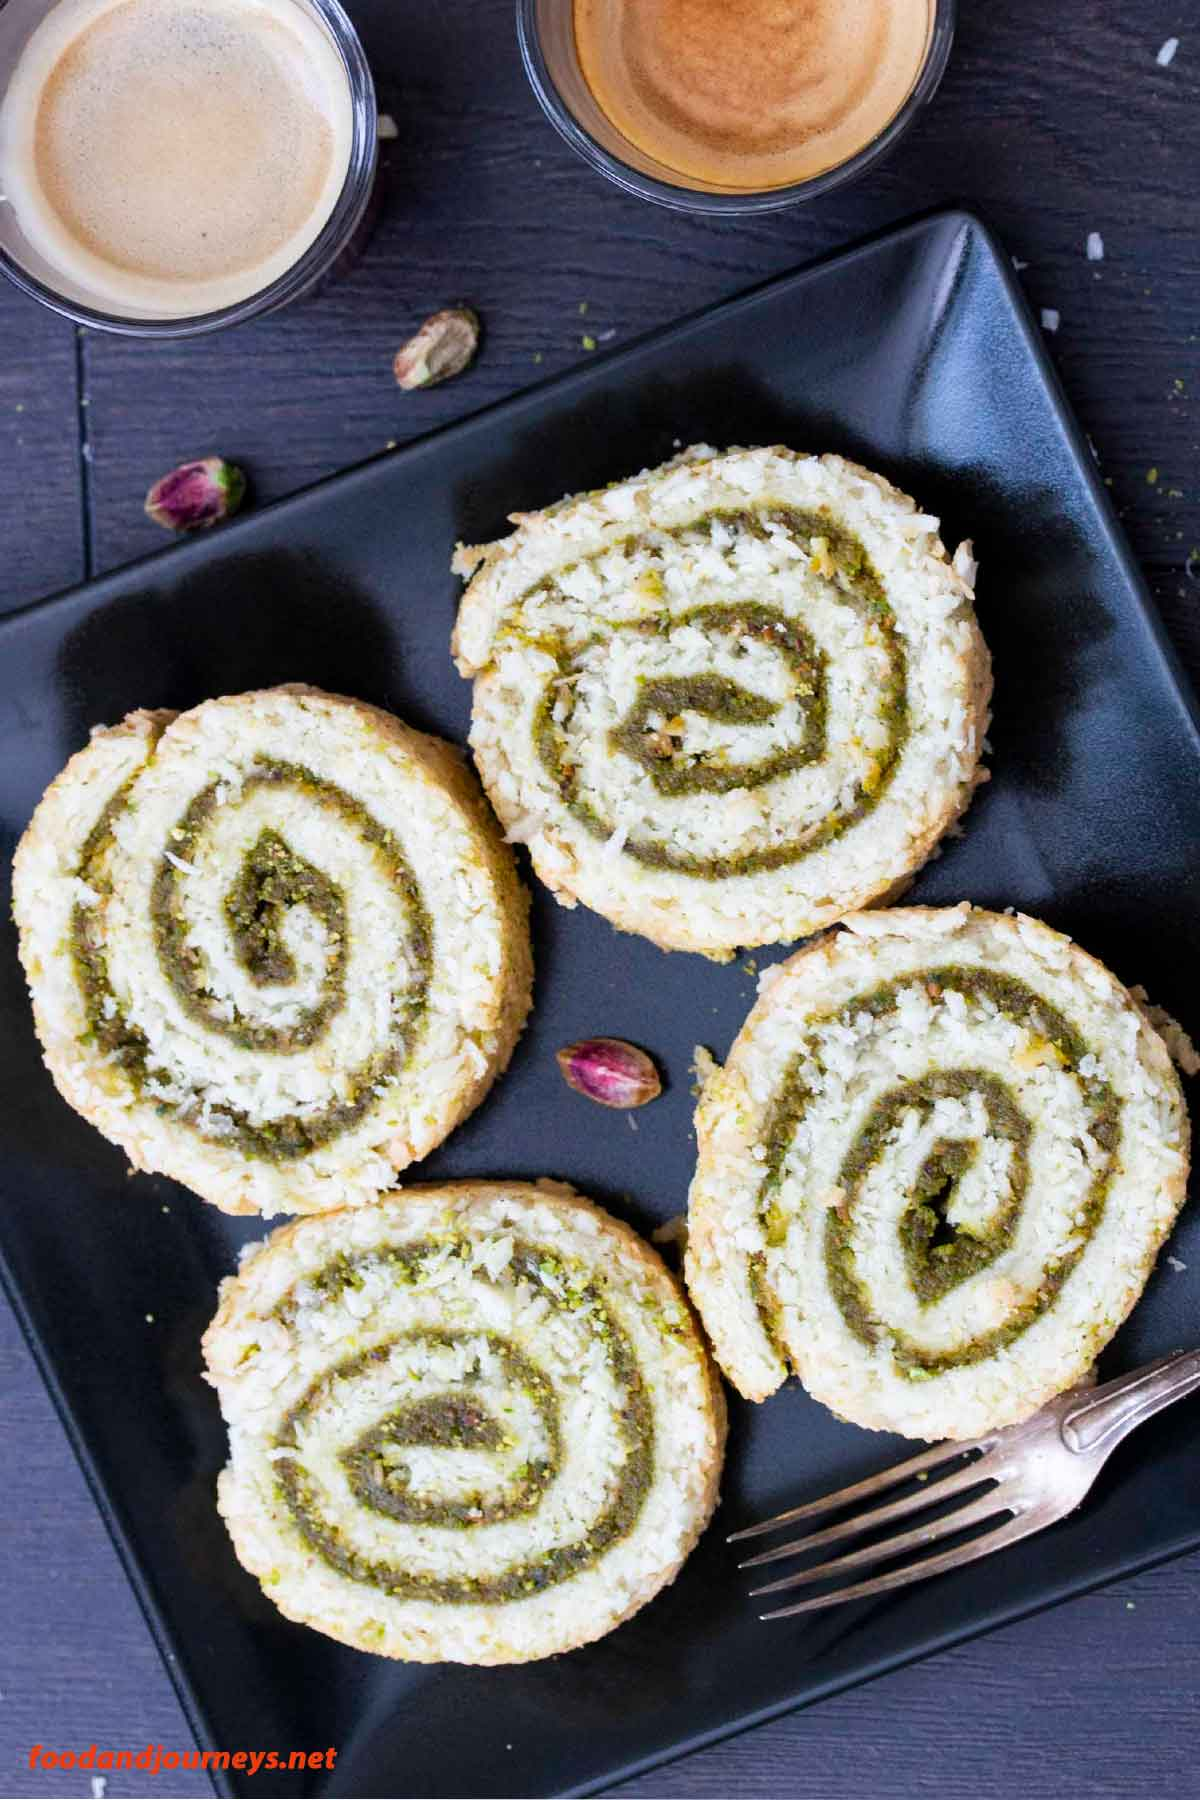 Overhead shot showing four slices of Coconut & Pistachio Cake Roll.